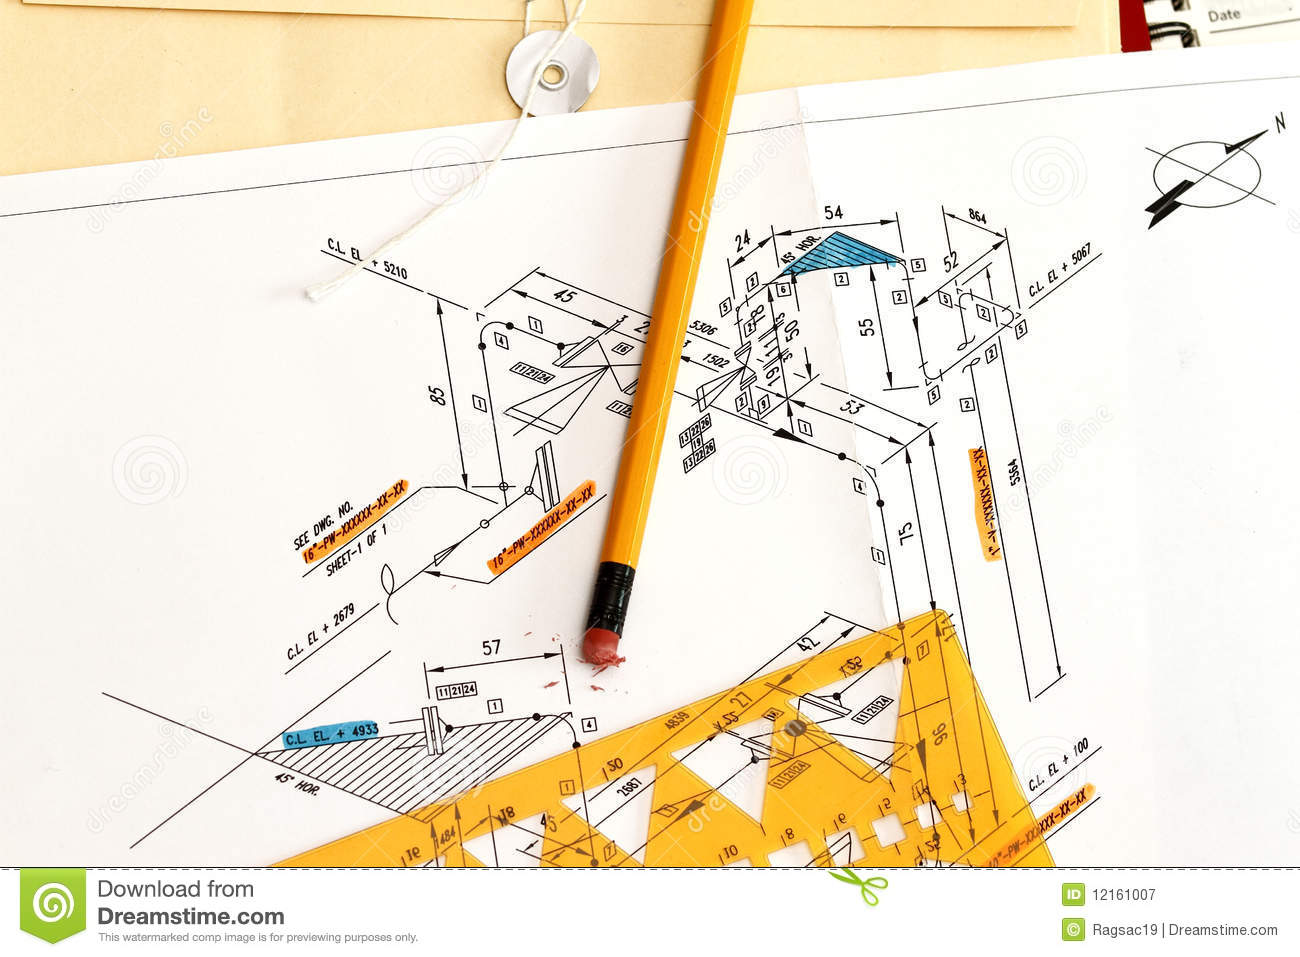 hight resolution of piping and instrument diagram